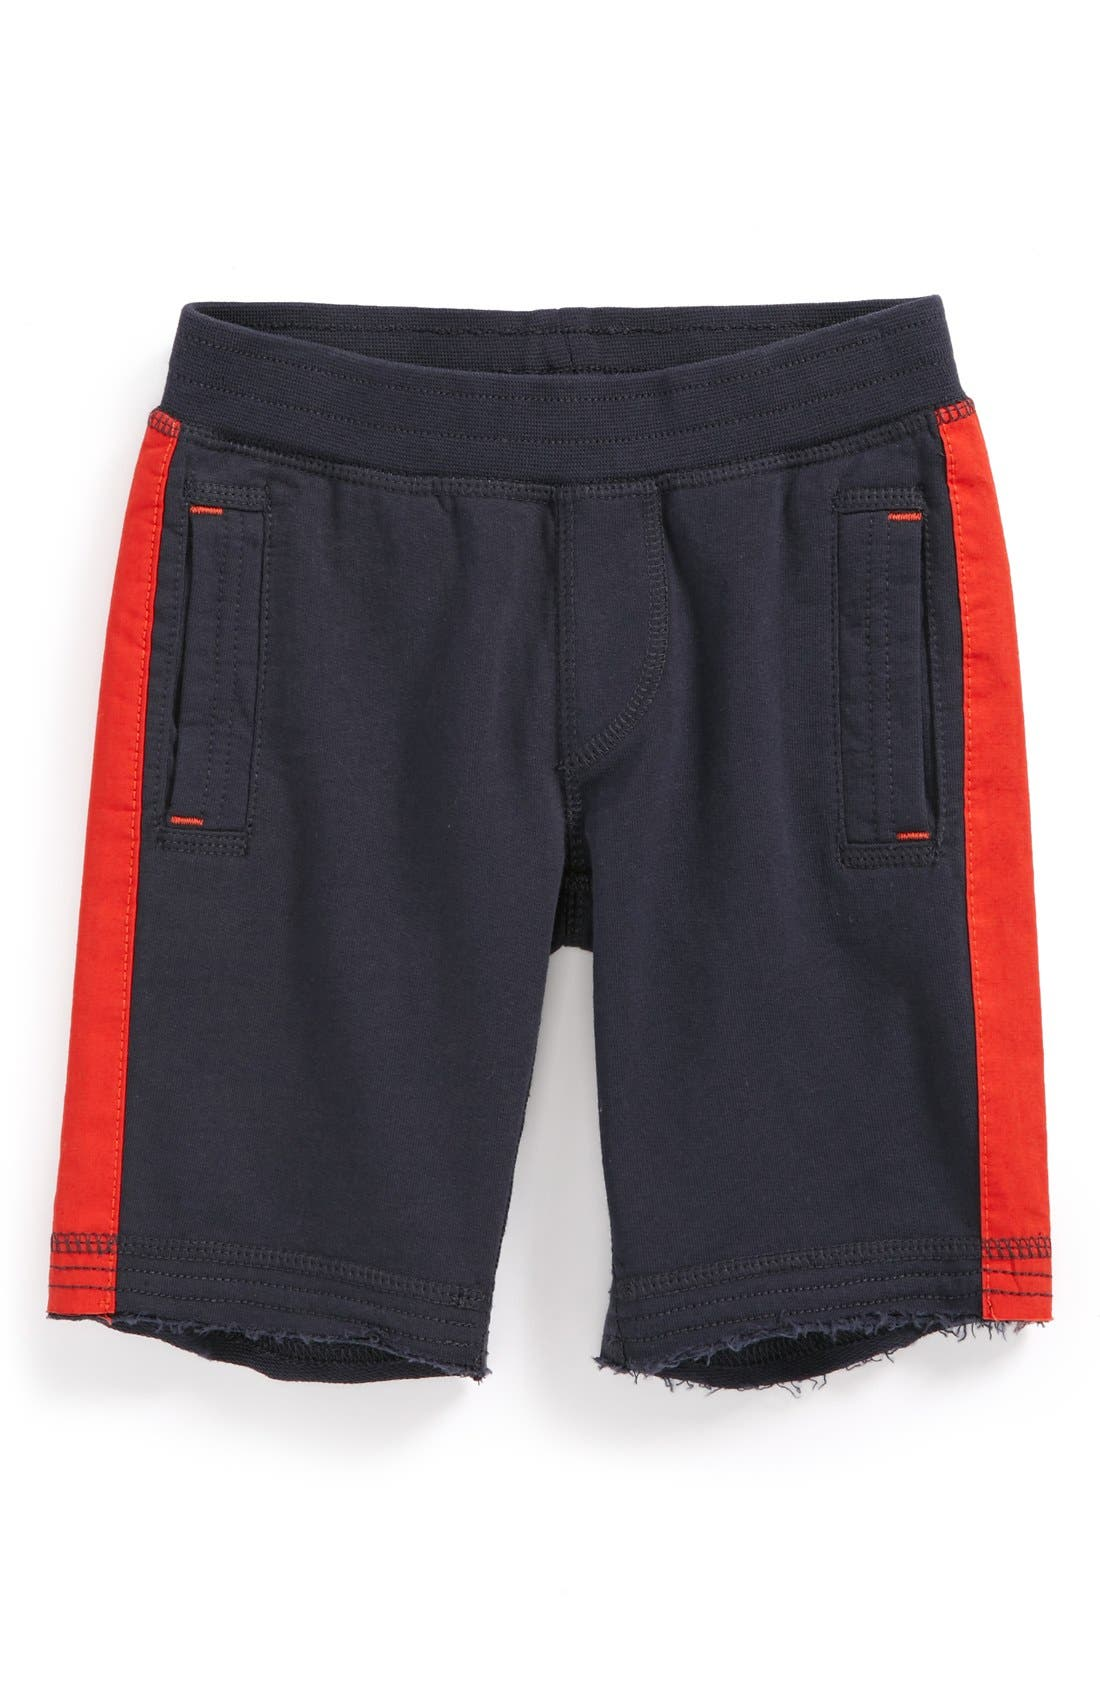 Alternate Image 1 Selected - Tea Collection Side Stripe Gym Shorts (Toddler Boys)